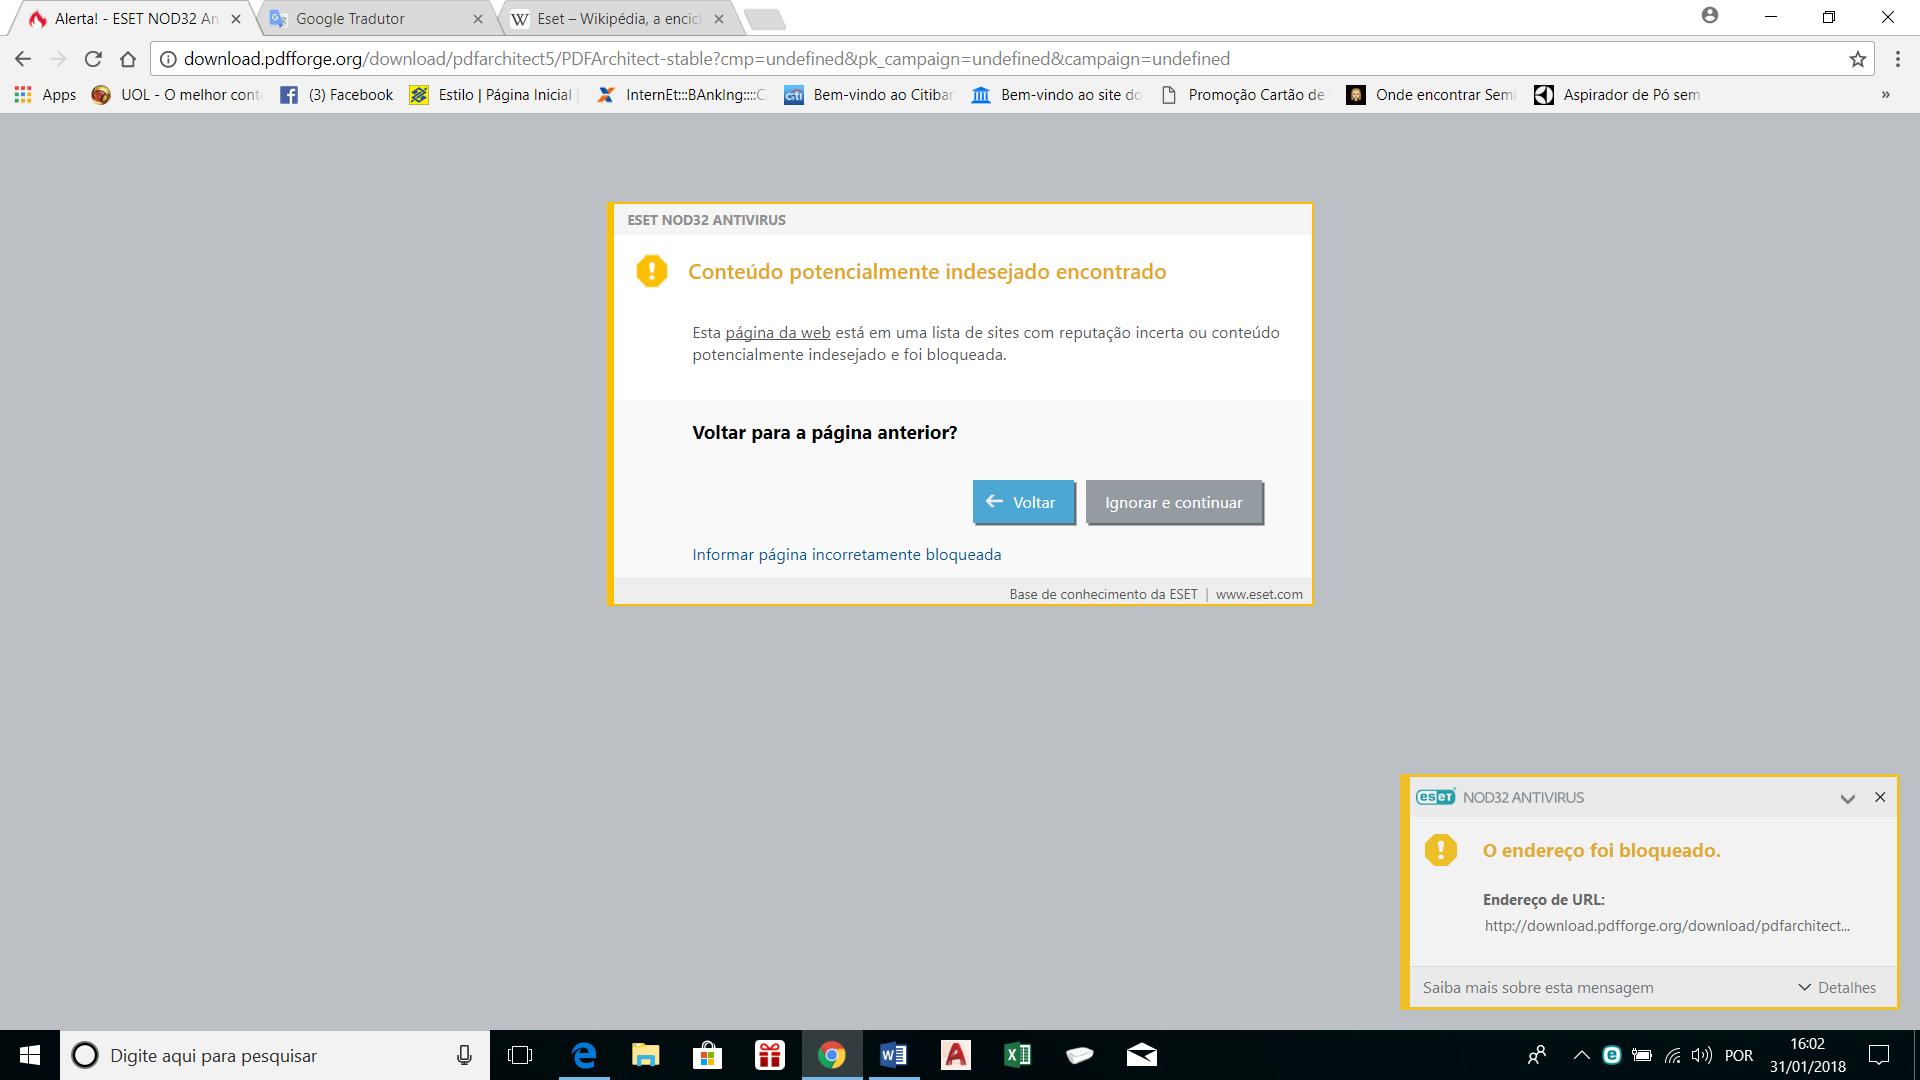 PDFFORGE page blocked by ESET antivirus - English Help - pdfforge forums